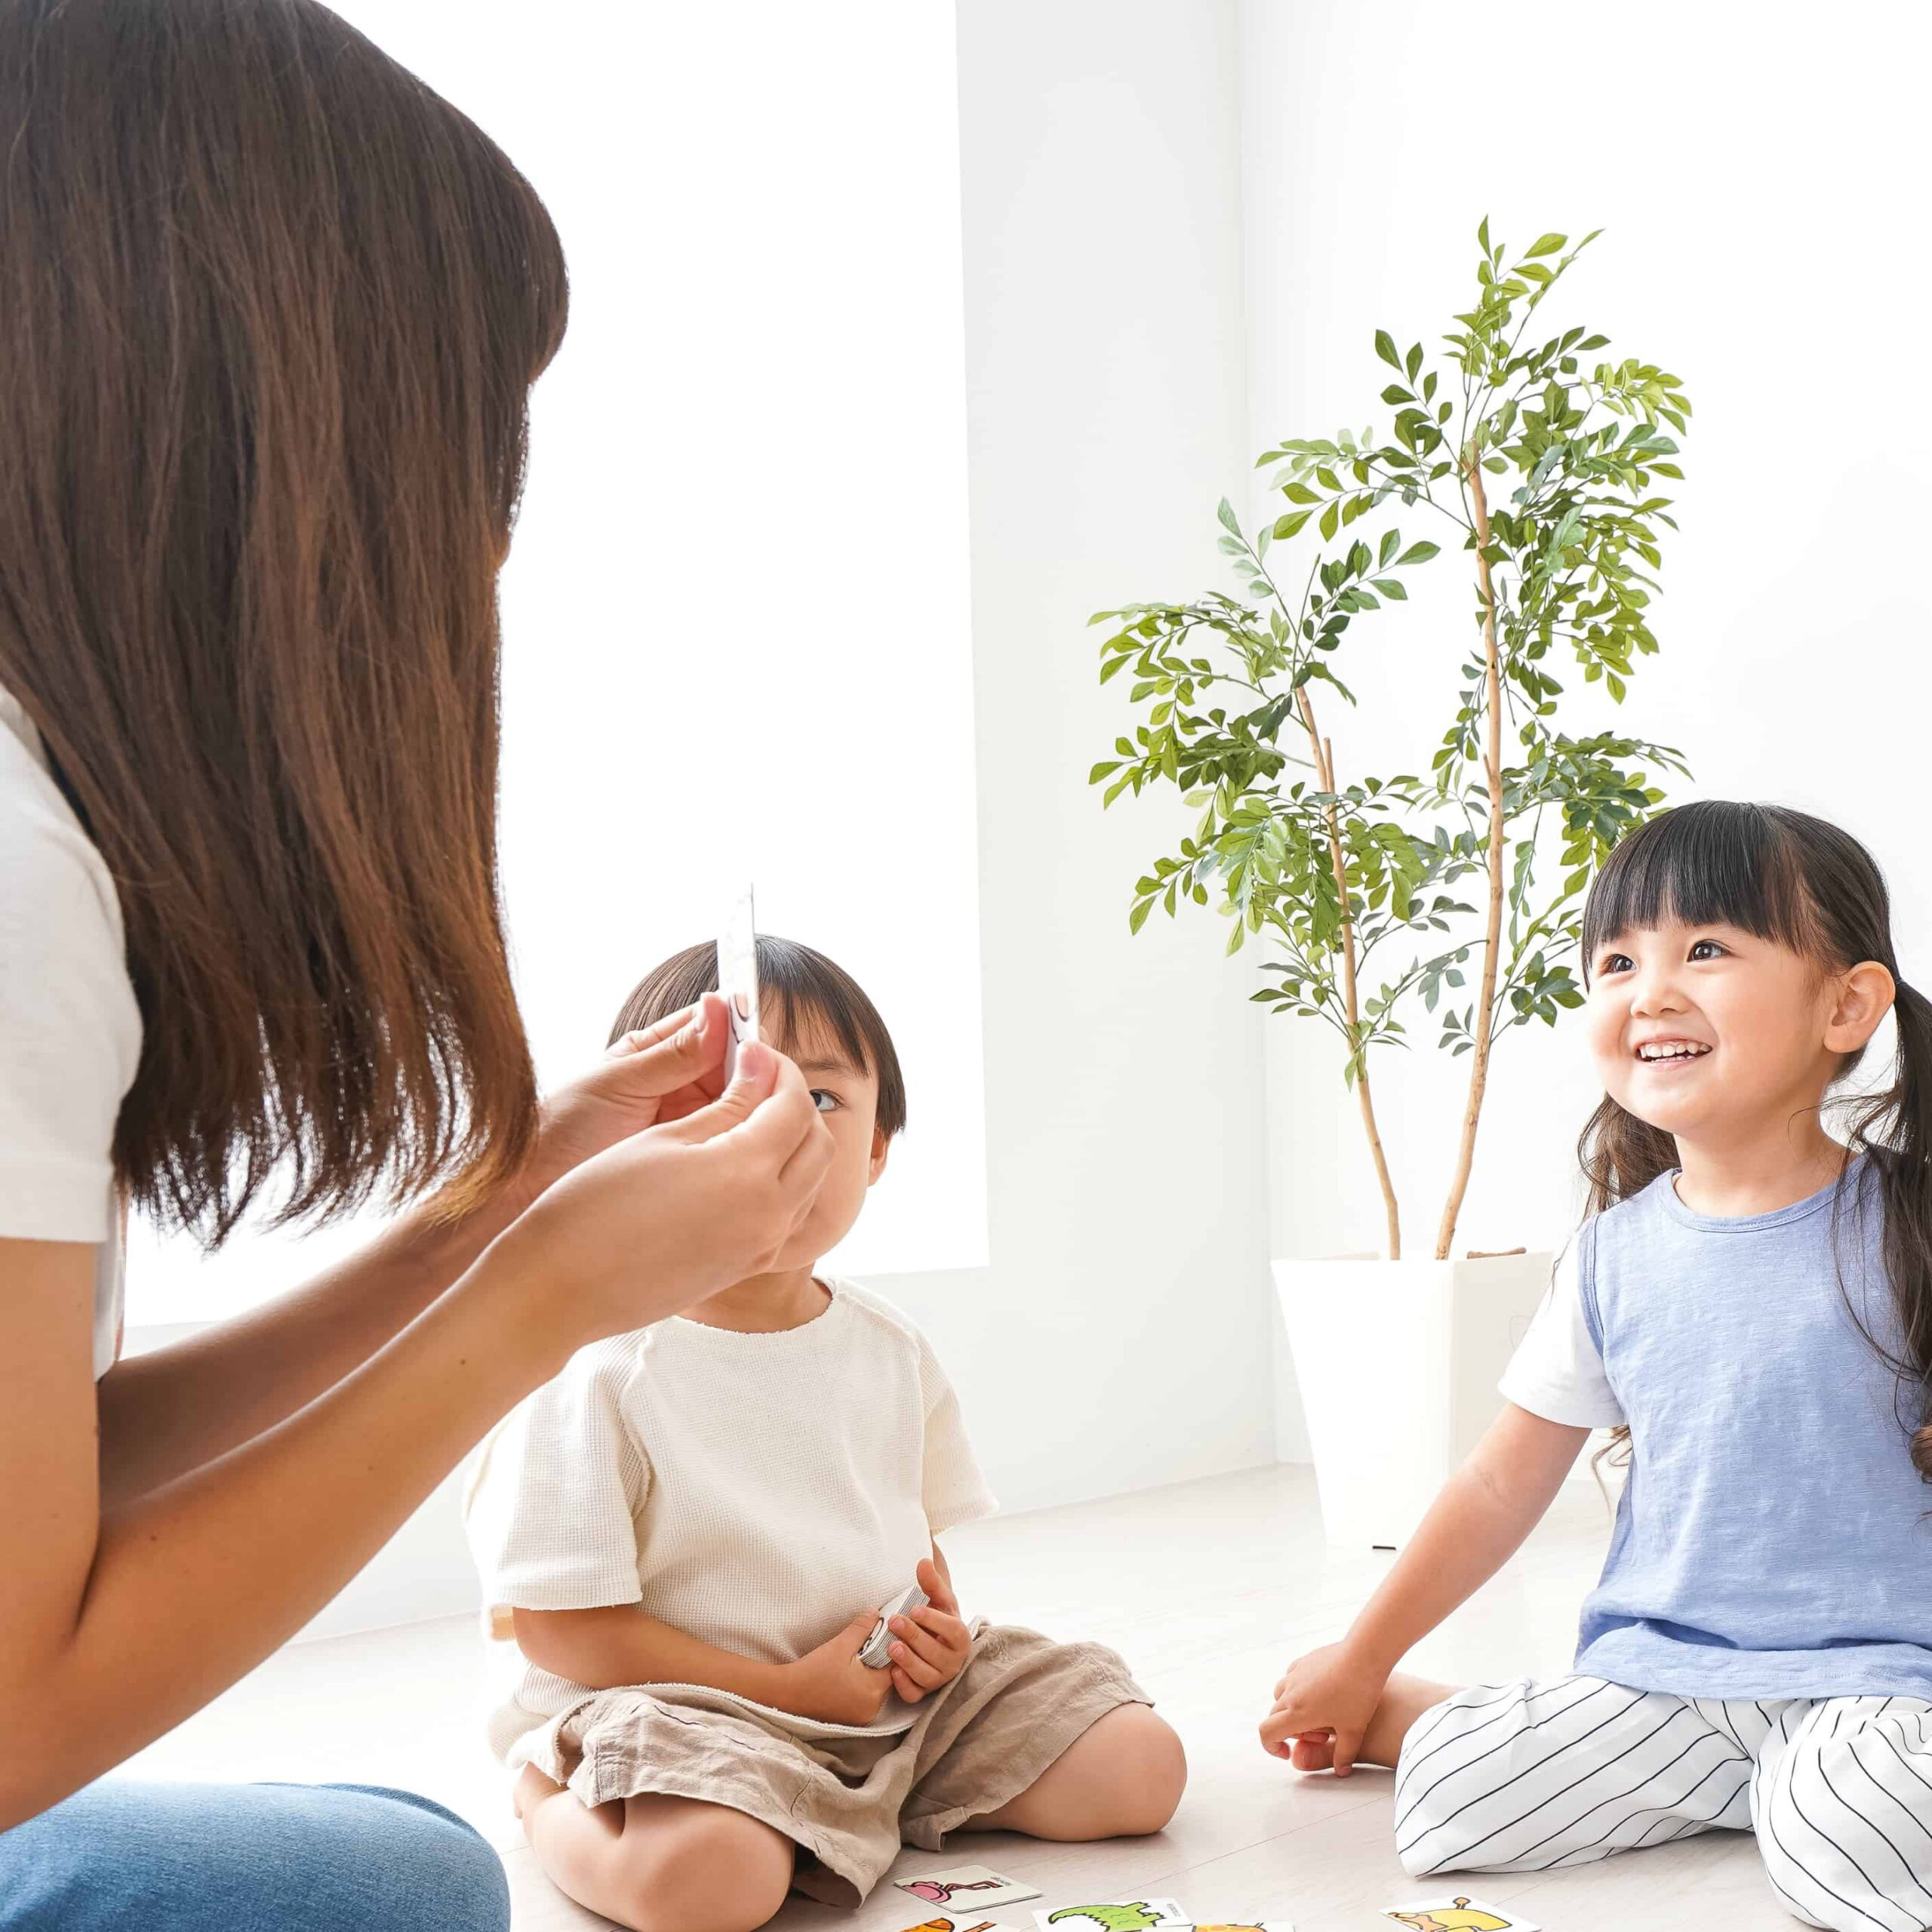 10+ Ways to Find a Language Teacher for Your Child